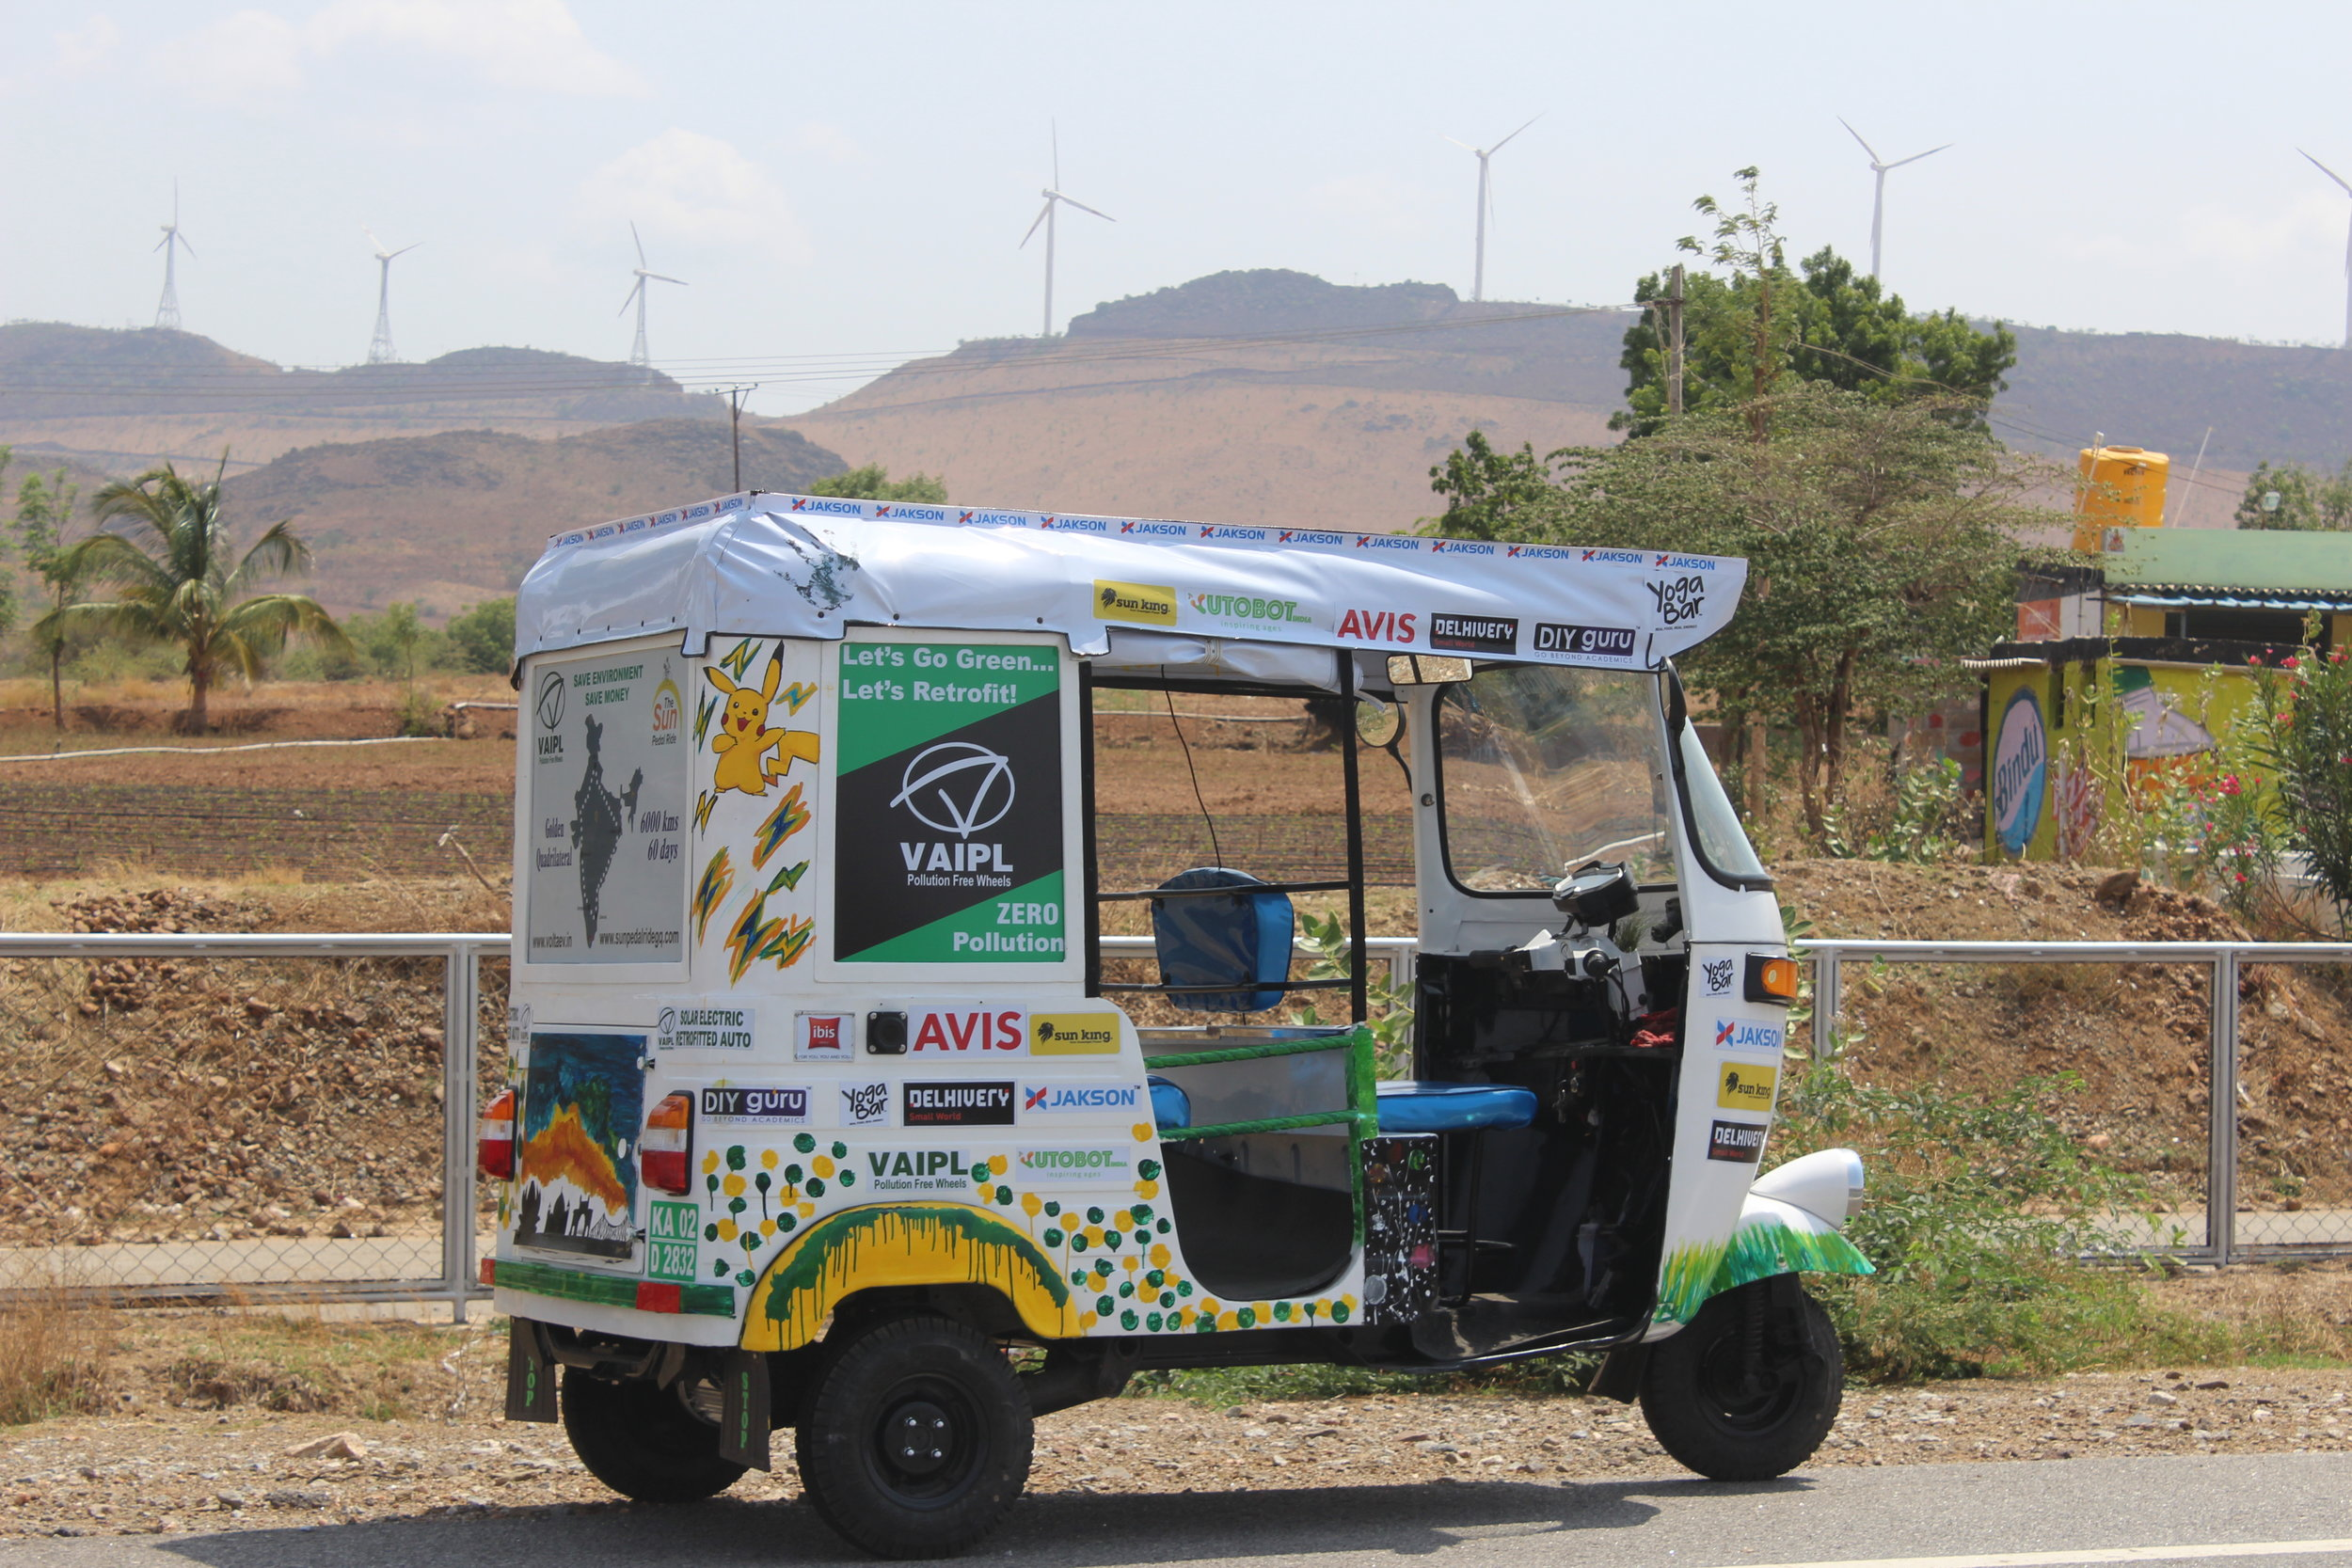 Wind farms en route to Davanagere